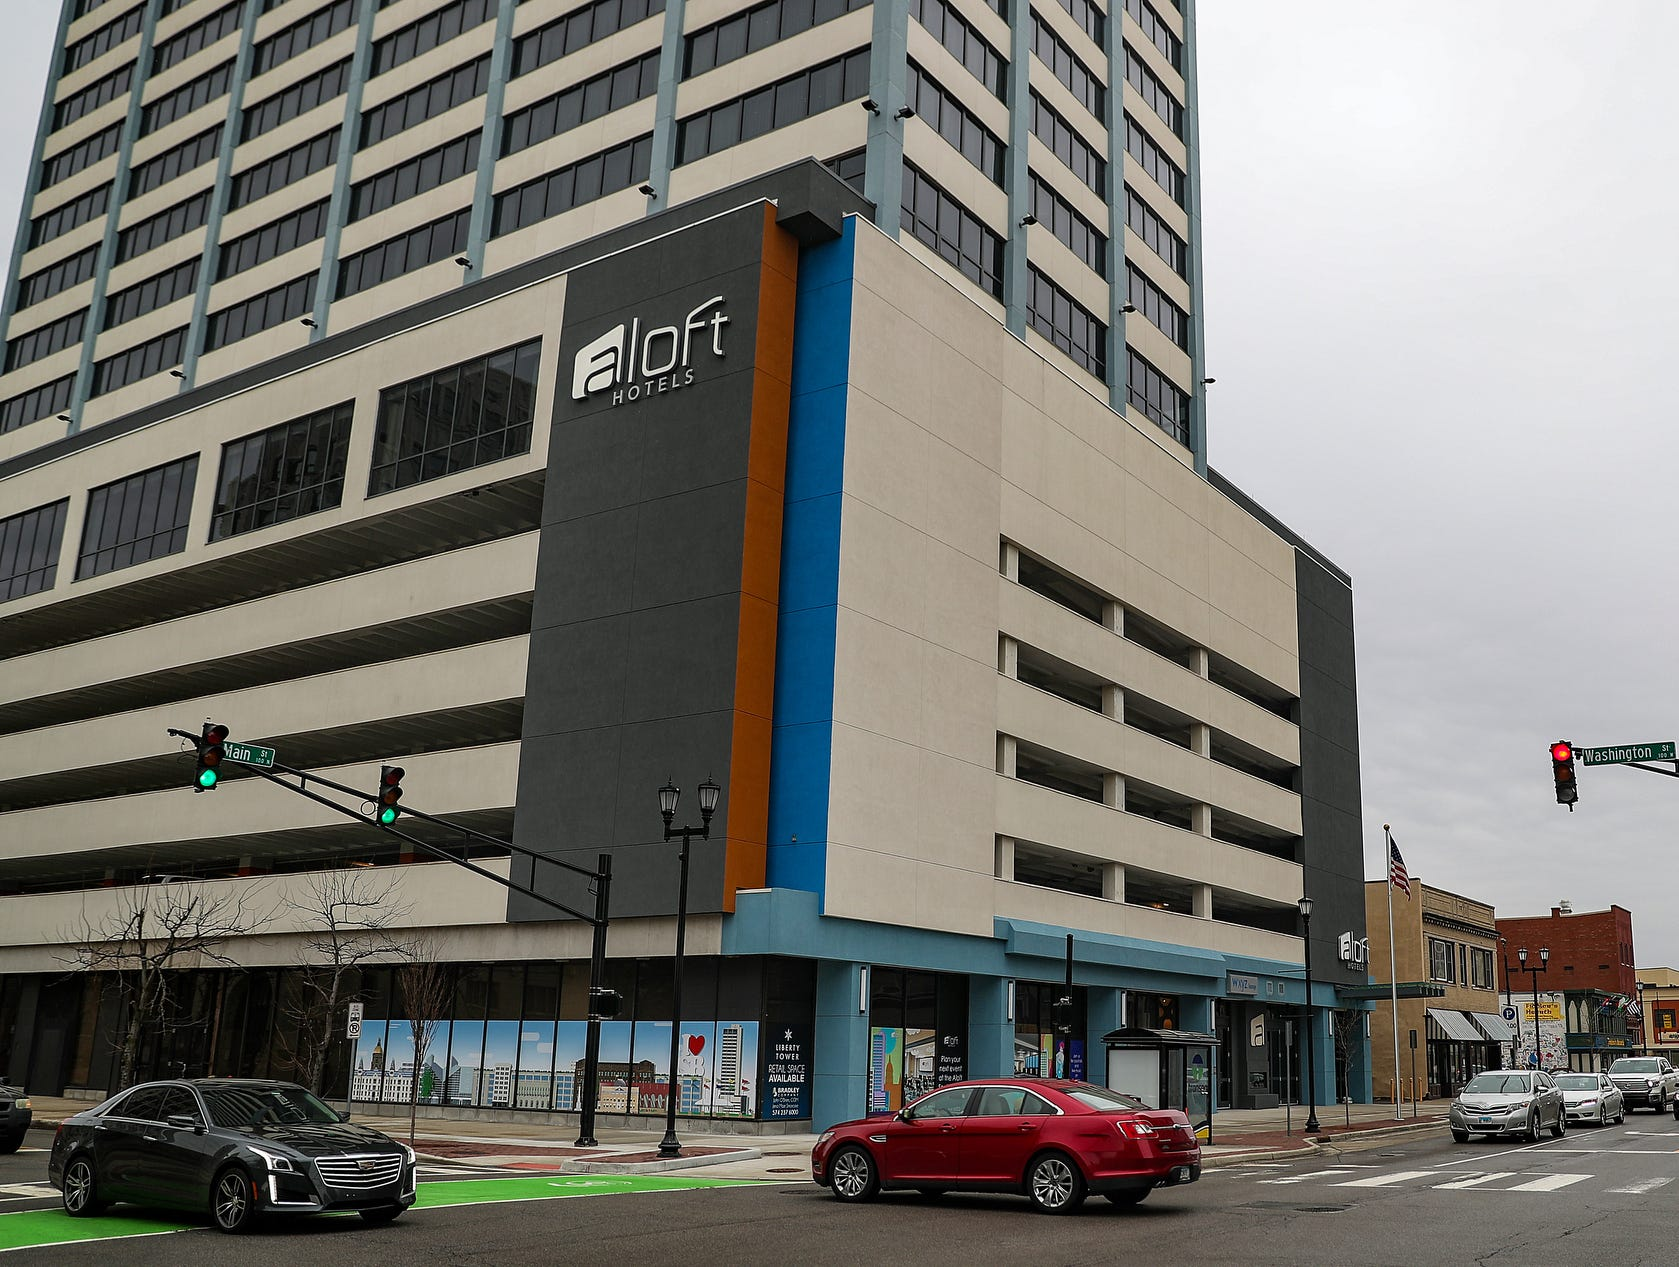 Liberty Tower, a 25-story building formerly known as Chase Tower, now houses Marriott-brand Aloft hotel and soon-to-open first floor retail and upper floor condos, seen in South Bend, Ind. on Wednesday, March 13, 2019.